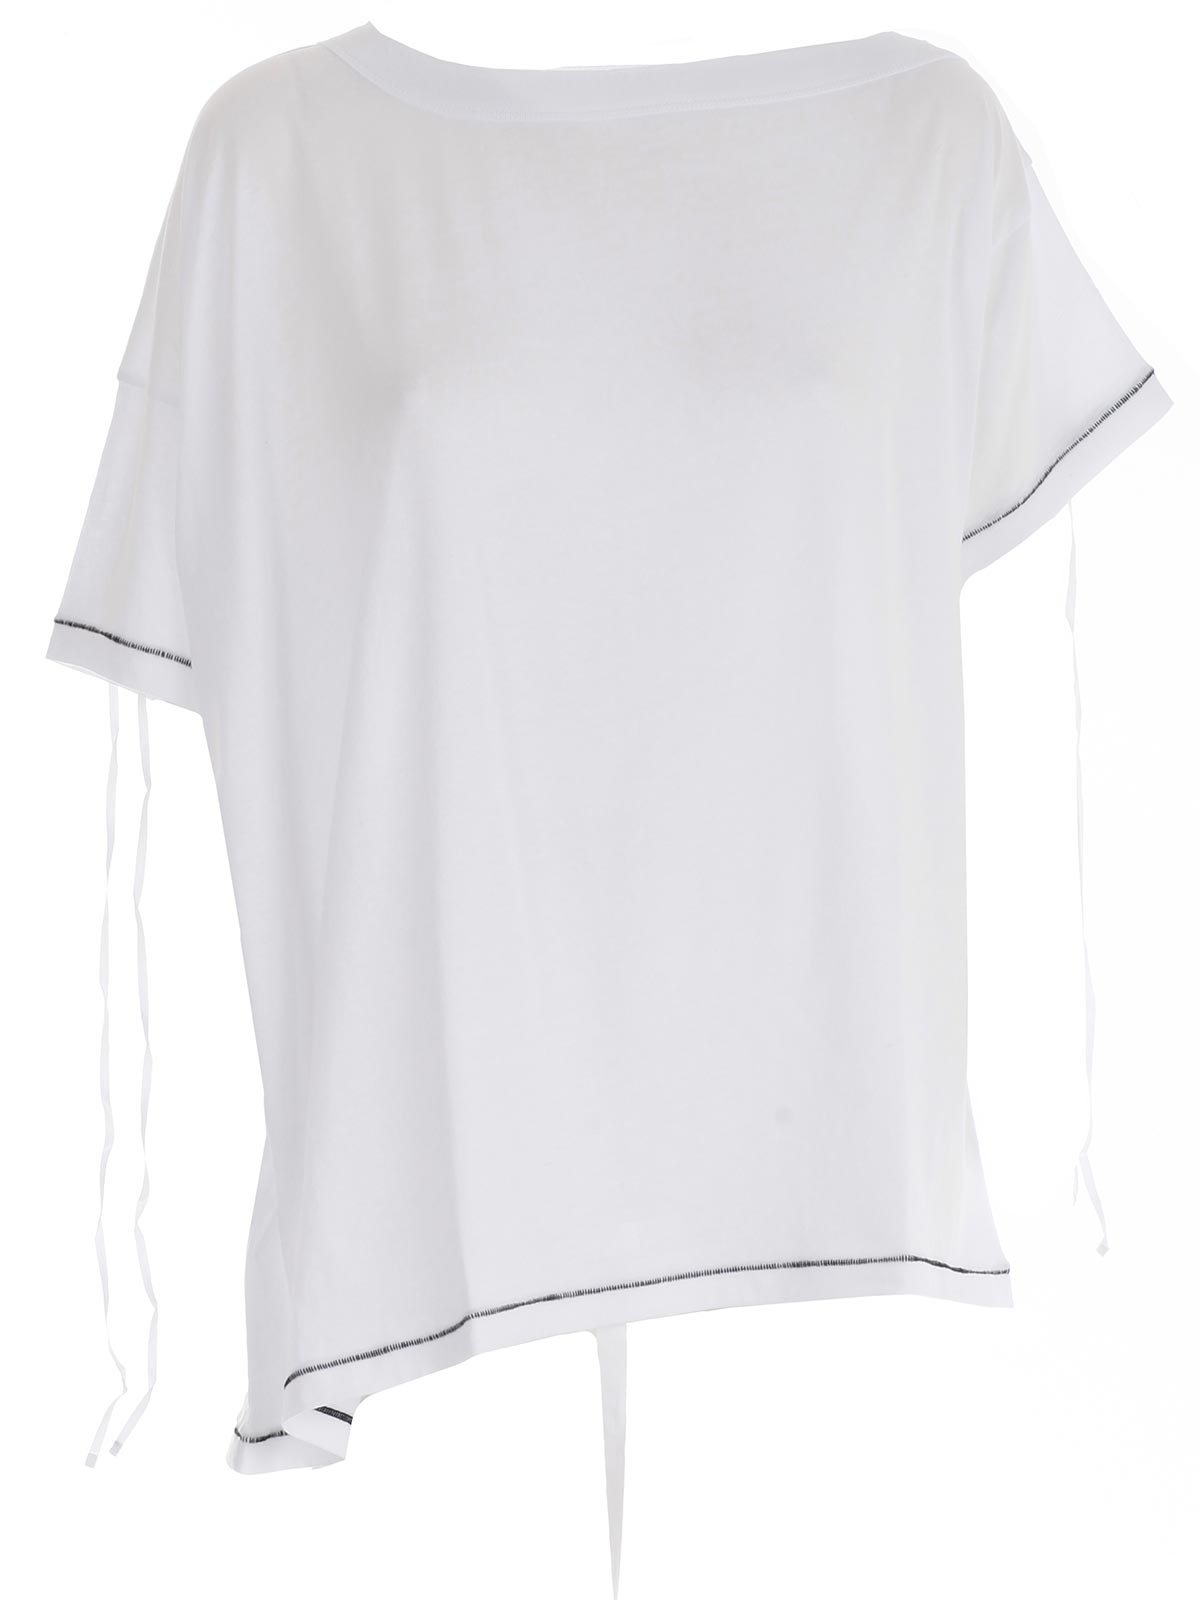 Picture of ANN DEMEULEMESTER T-SHIRT